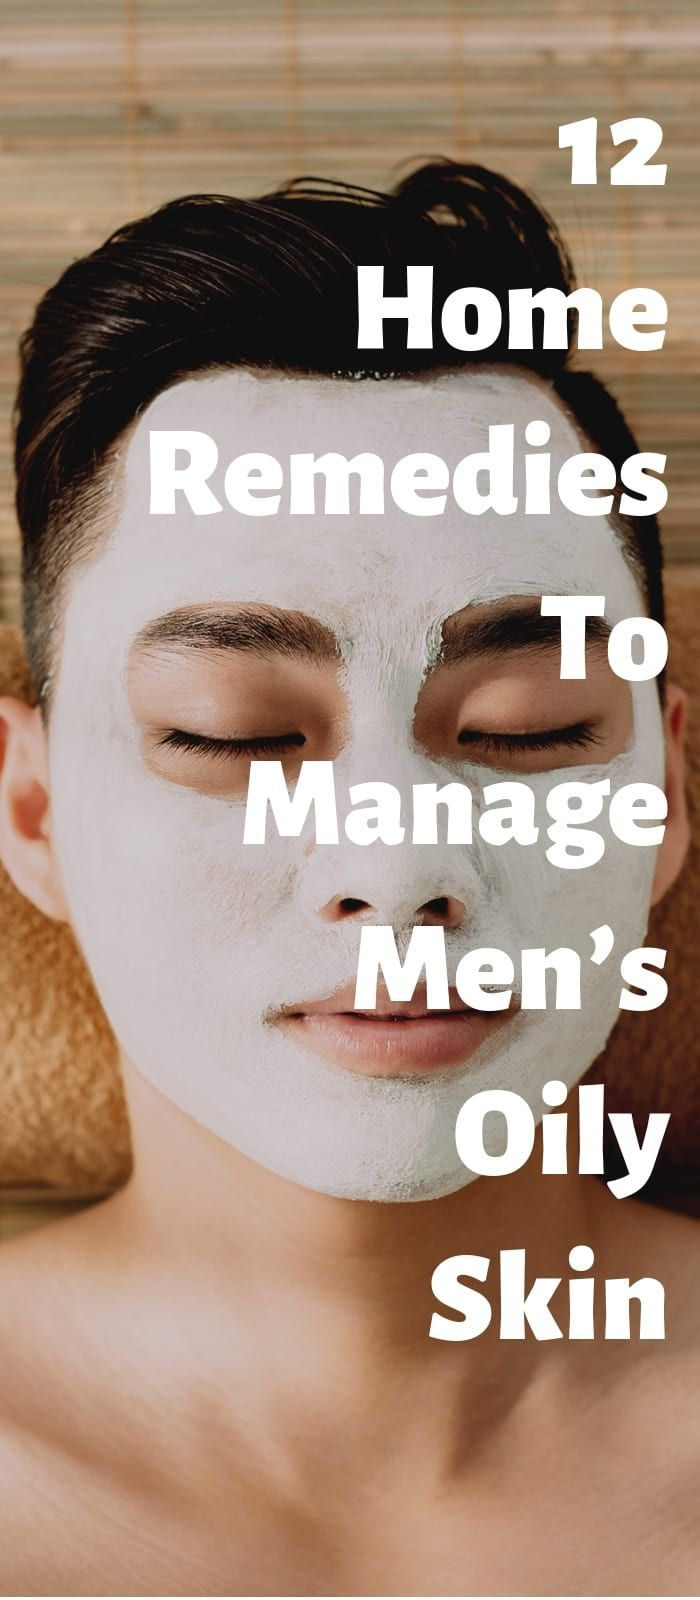 12 Home Remedies To Manage Mens Oily Skin Easily In 2020 Men Skin Care Routine Oily Skin Mens Skin Care